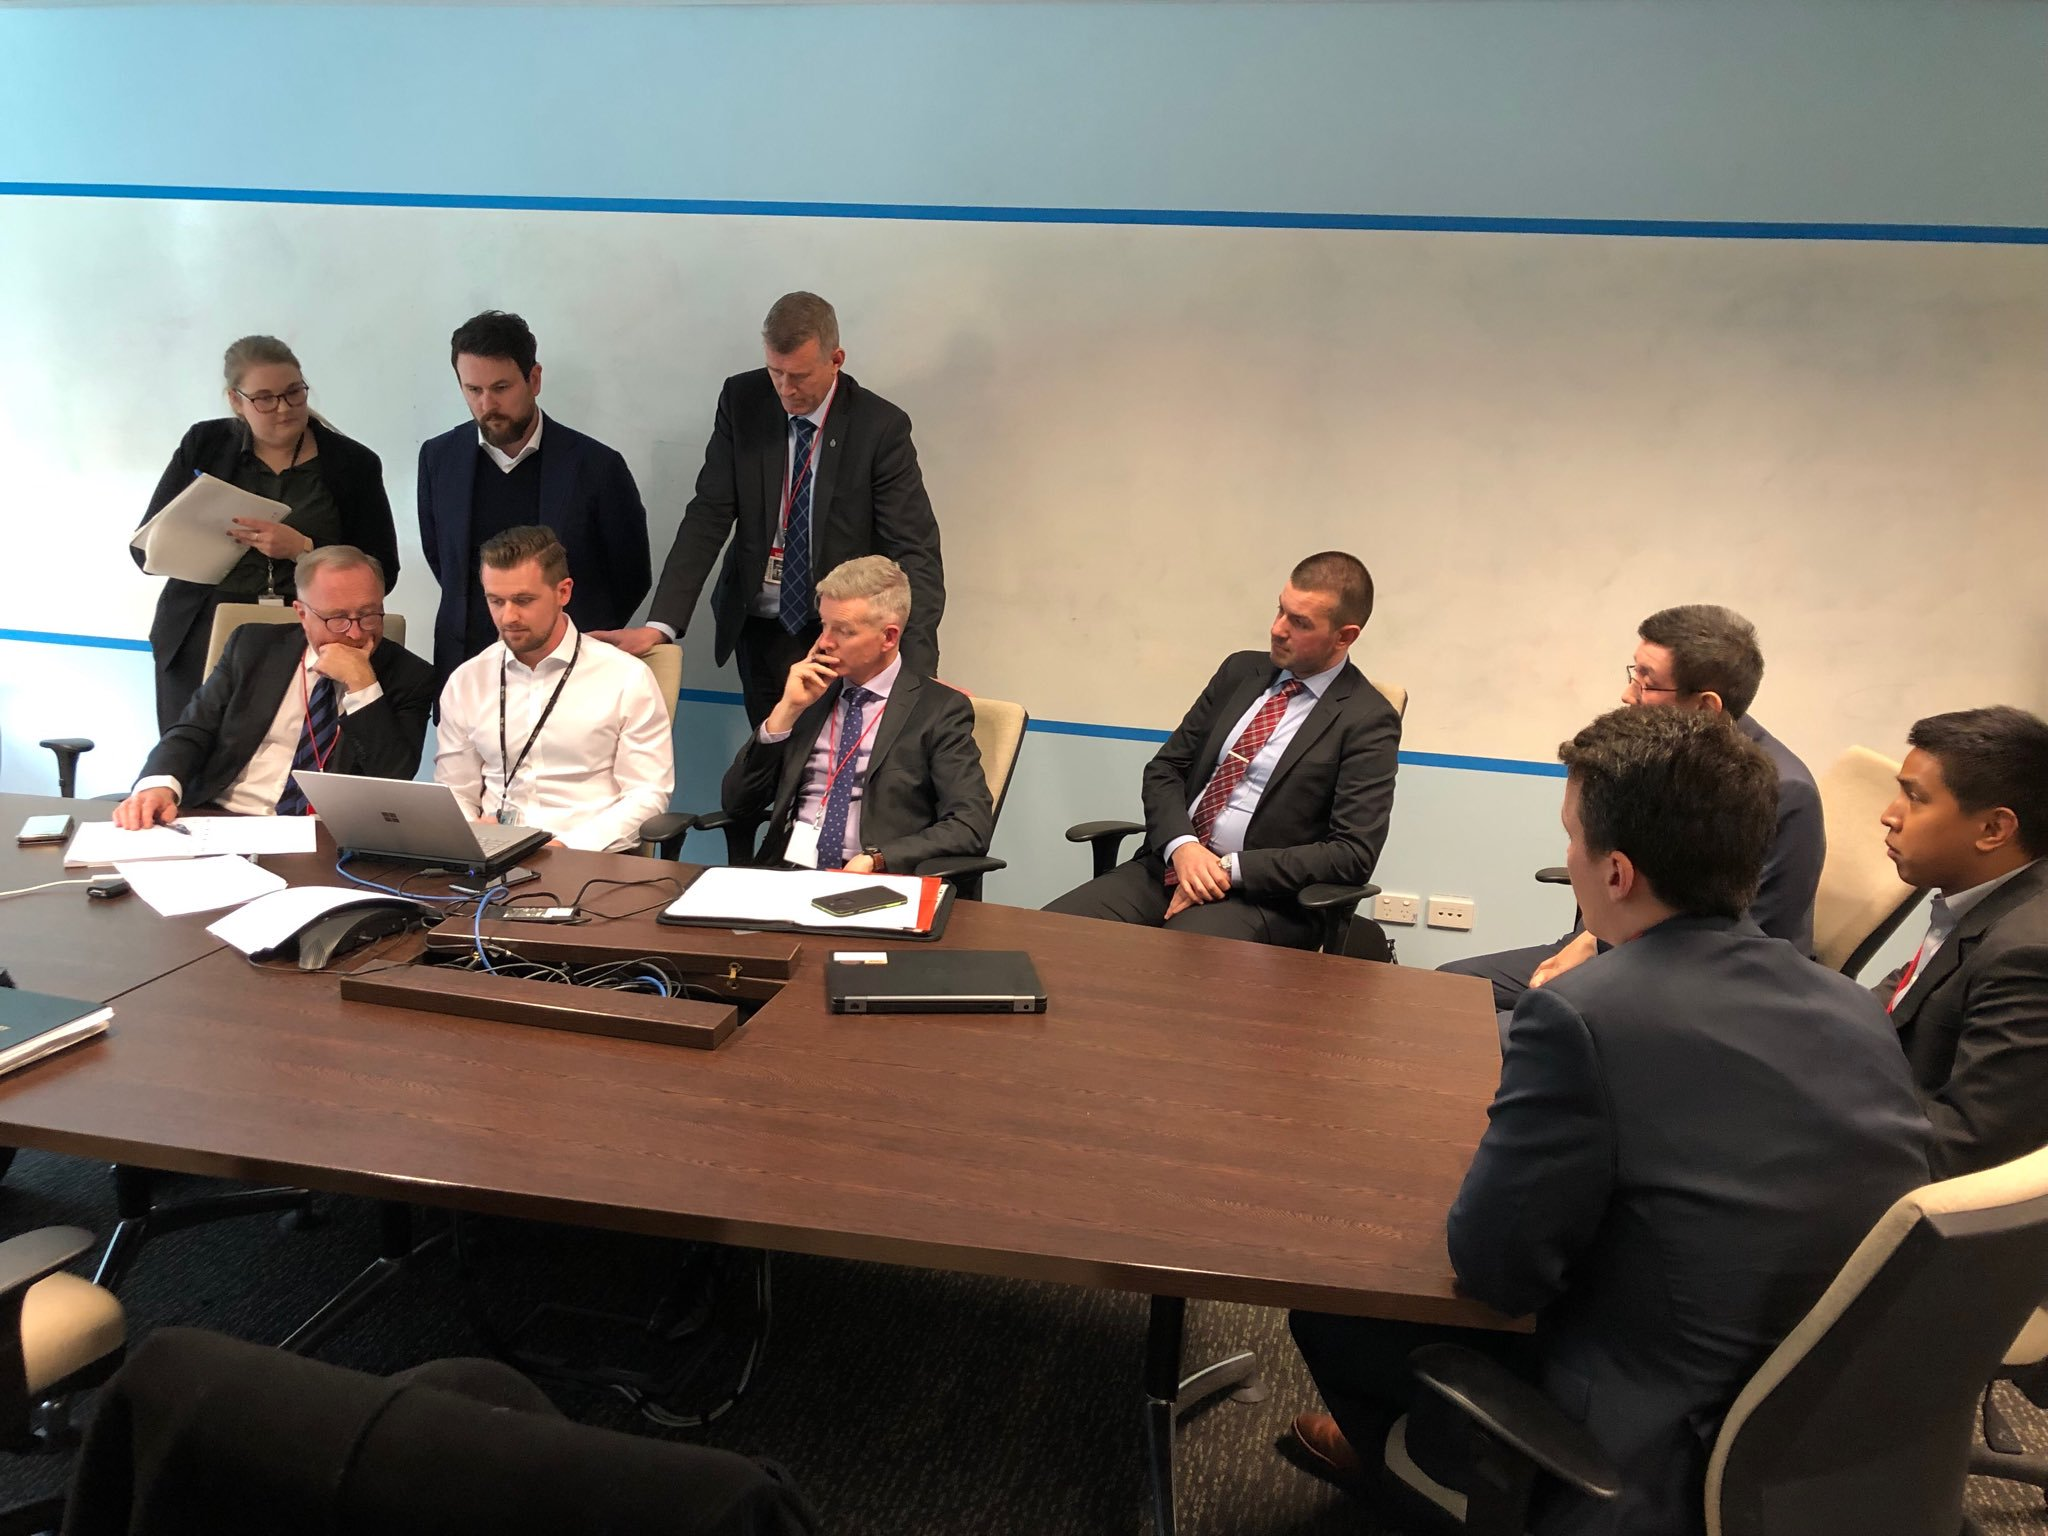 ABC lawyers and AFP officers hover over a computer as they work out what comes within the terms of the warrant. At the end of the table, on the right, are the  ... 			  </div> 			   			  <div class=